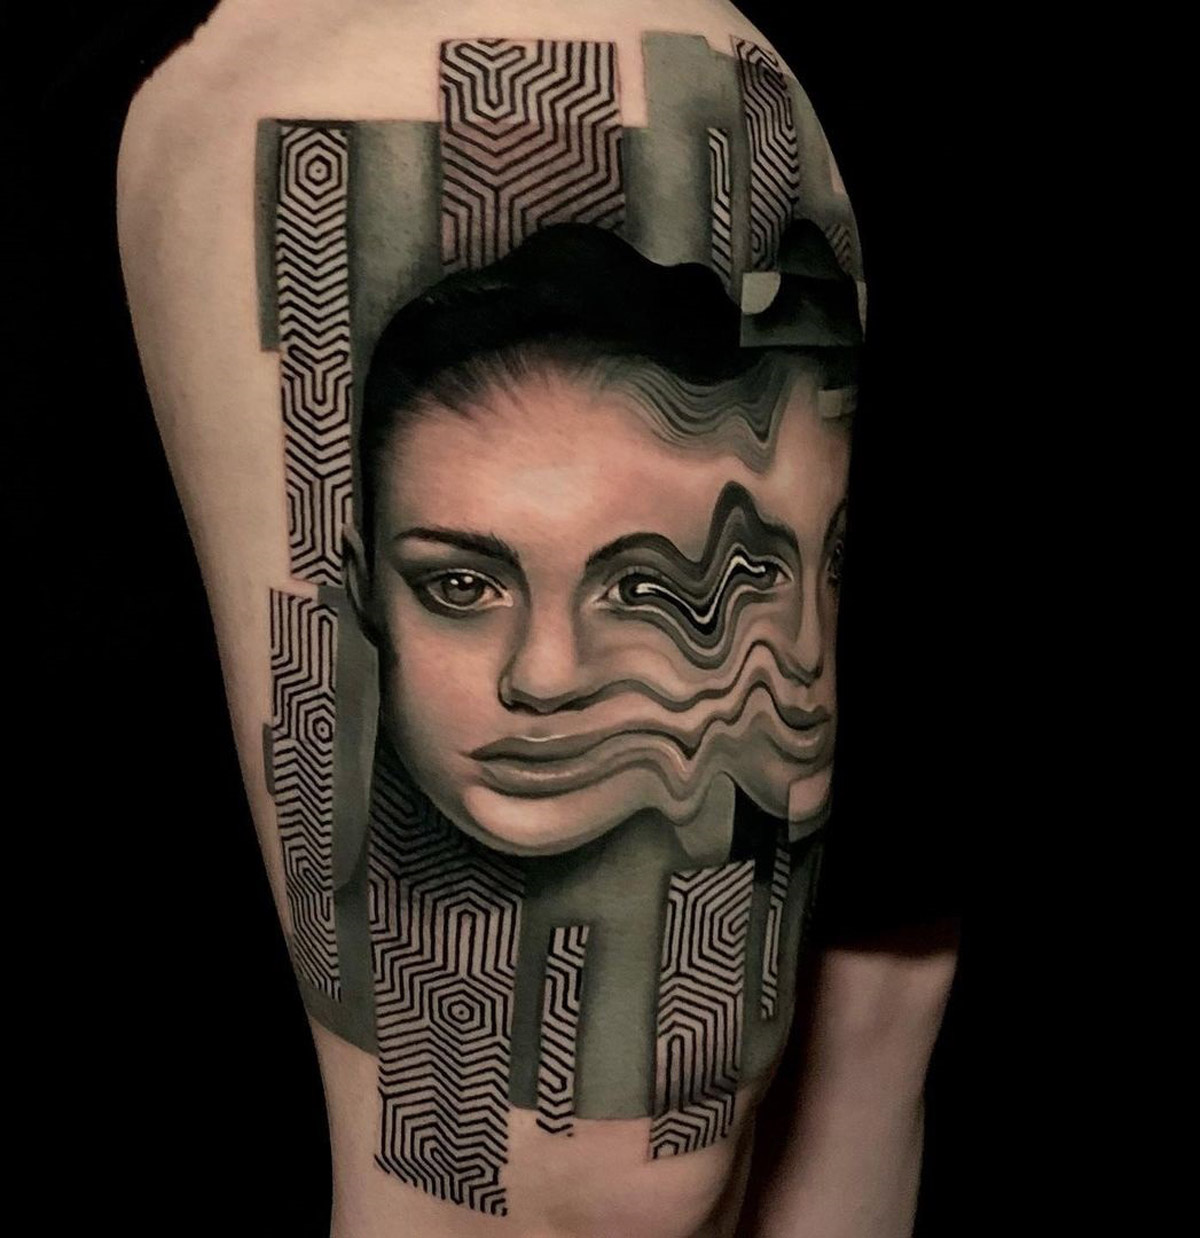 Psychedelic Portrait on woman's thigh